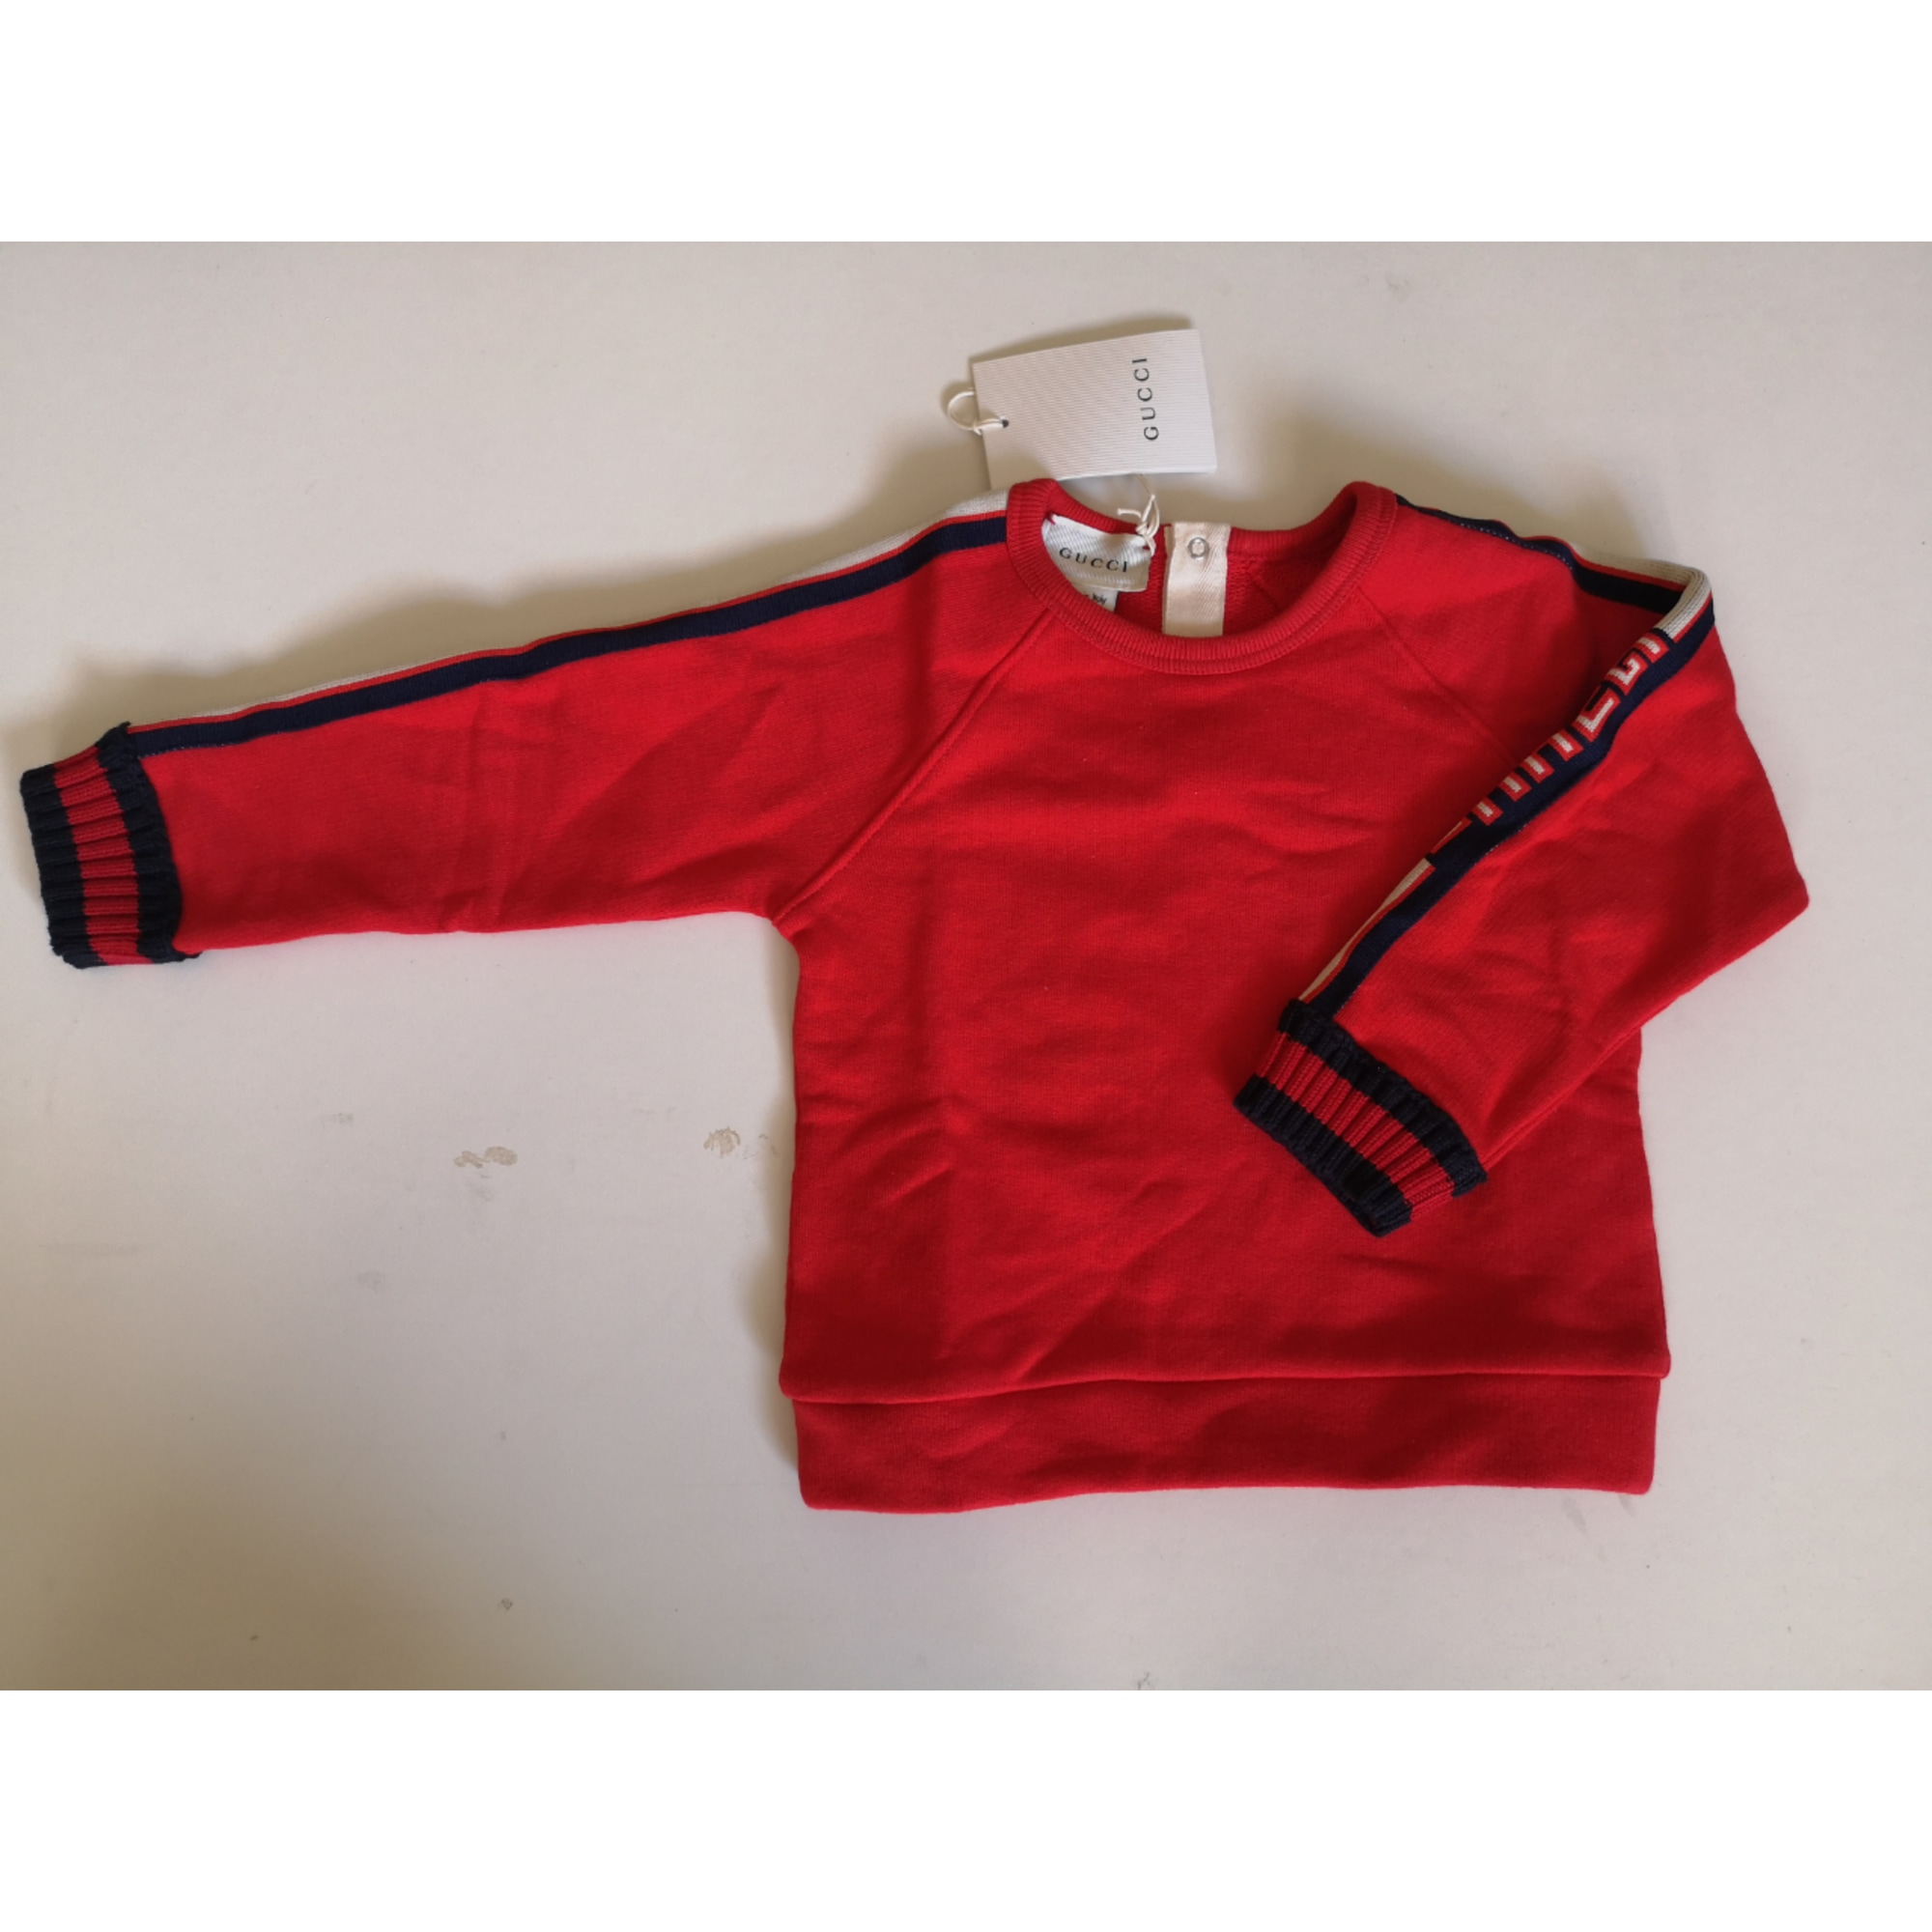 Sweat-Kleidung GUCCI Rot, bordeauxrot